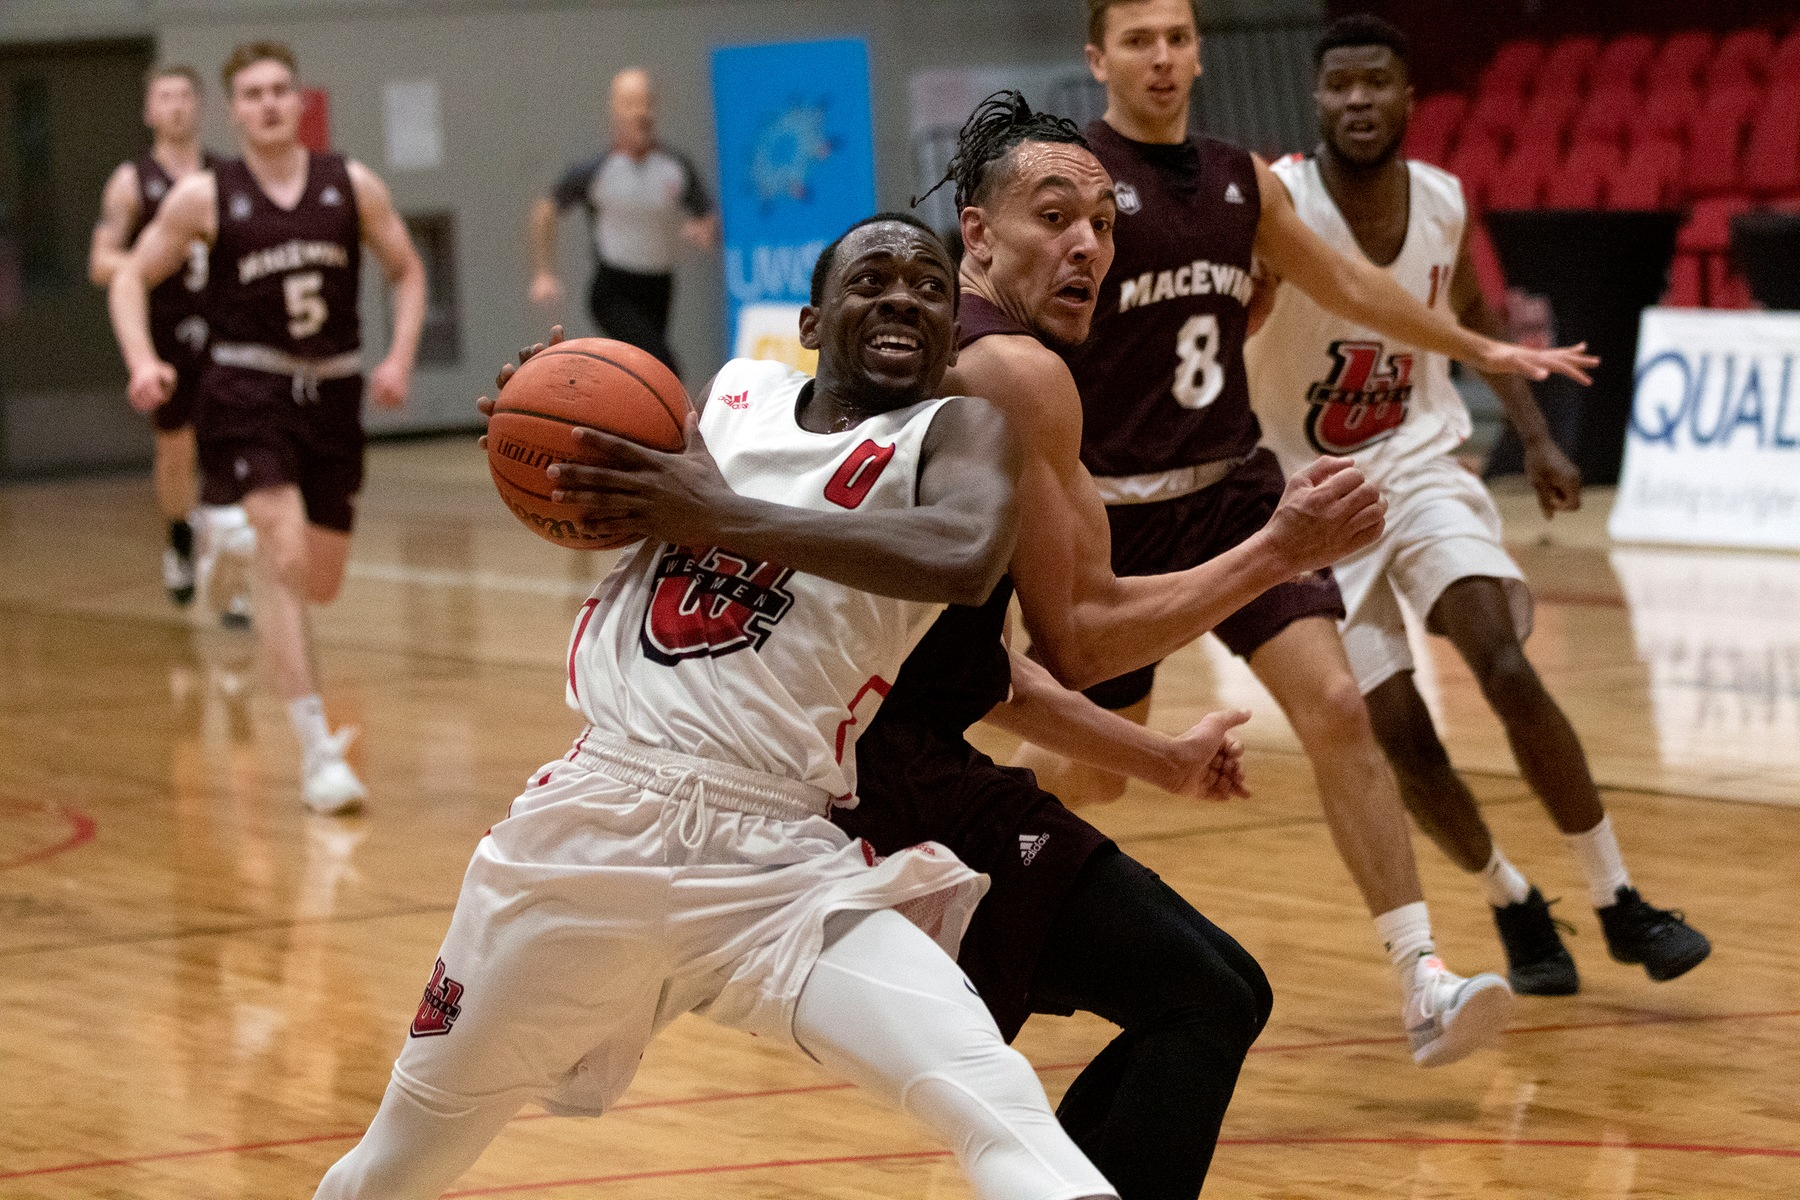 Wesmen guard DJ Dixon is fouled on his way to a lay-up during men's basketball action against the MacEwan Griffins on Friday, Jan. 10, 2020. (David Larkins/Wesmen Athletics)